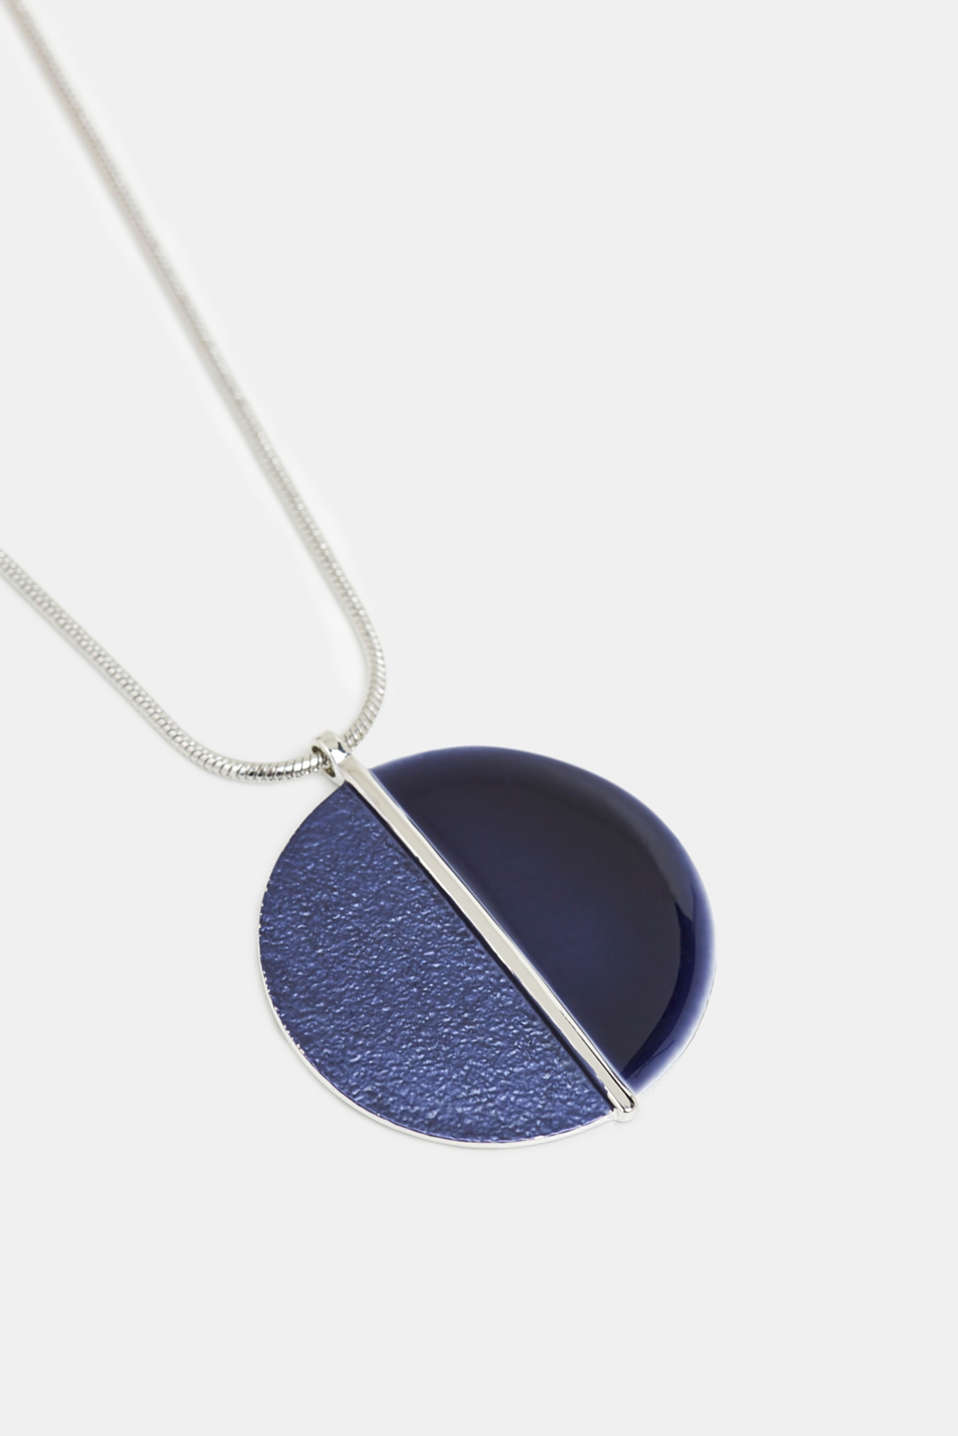 Necklace with a pendant, in metal, BLUE, detail image number 1